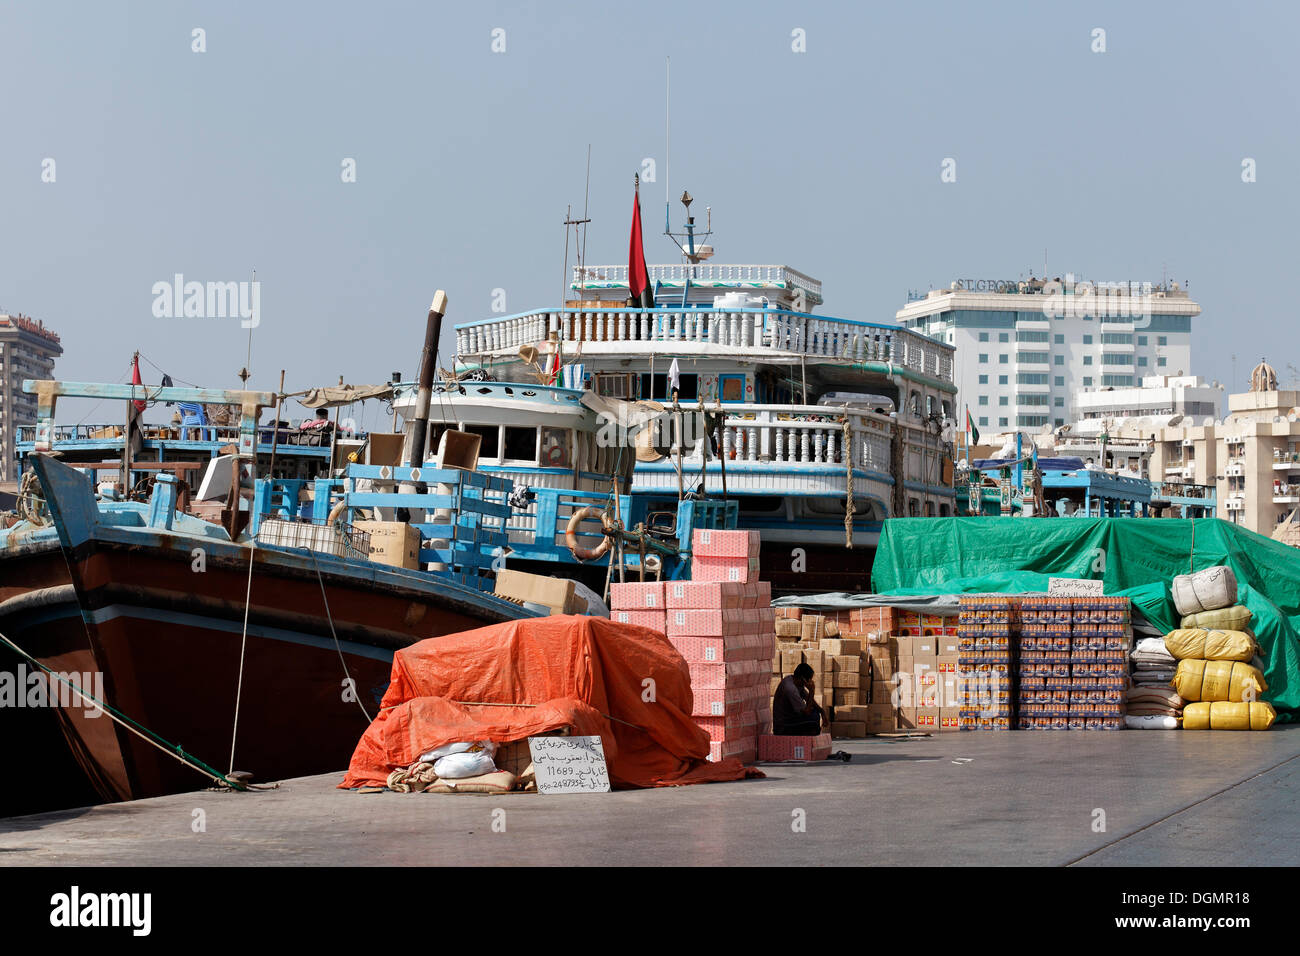 Cargo In Front Of An Old Wooden Ship Dhow Or Dau On Dubai Creek United Arab Emirates Middle East Asia